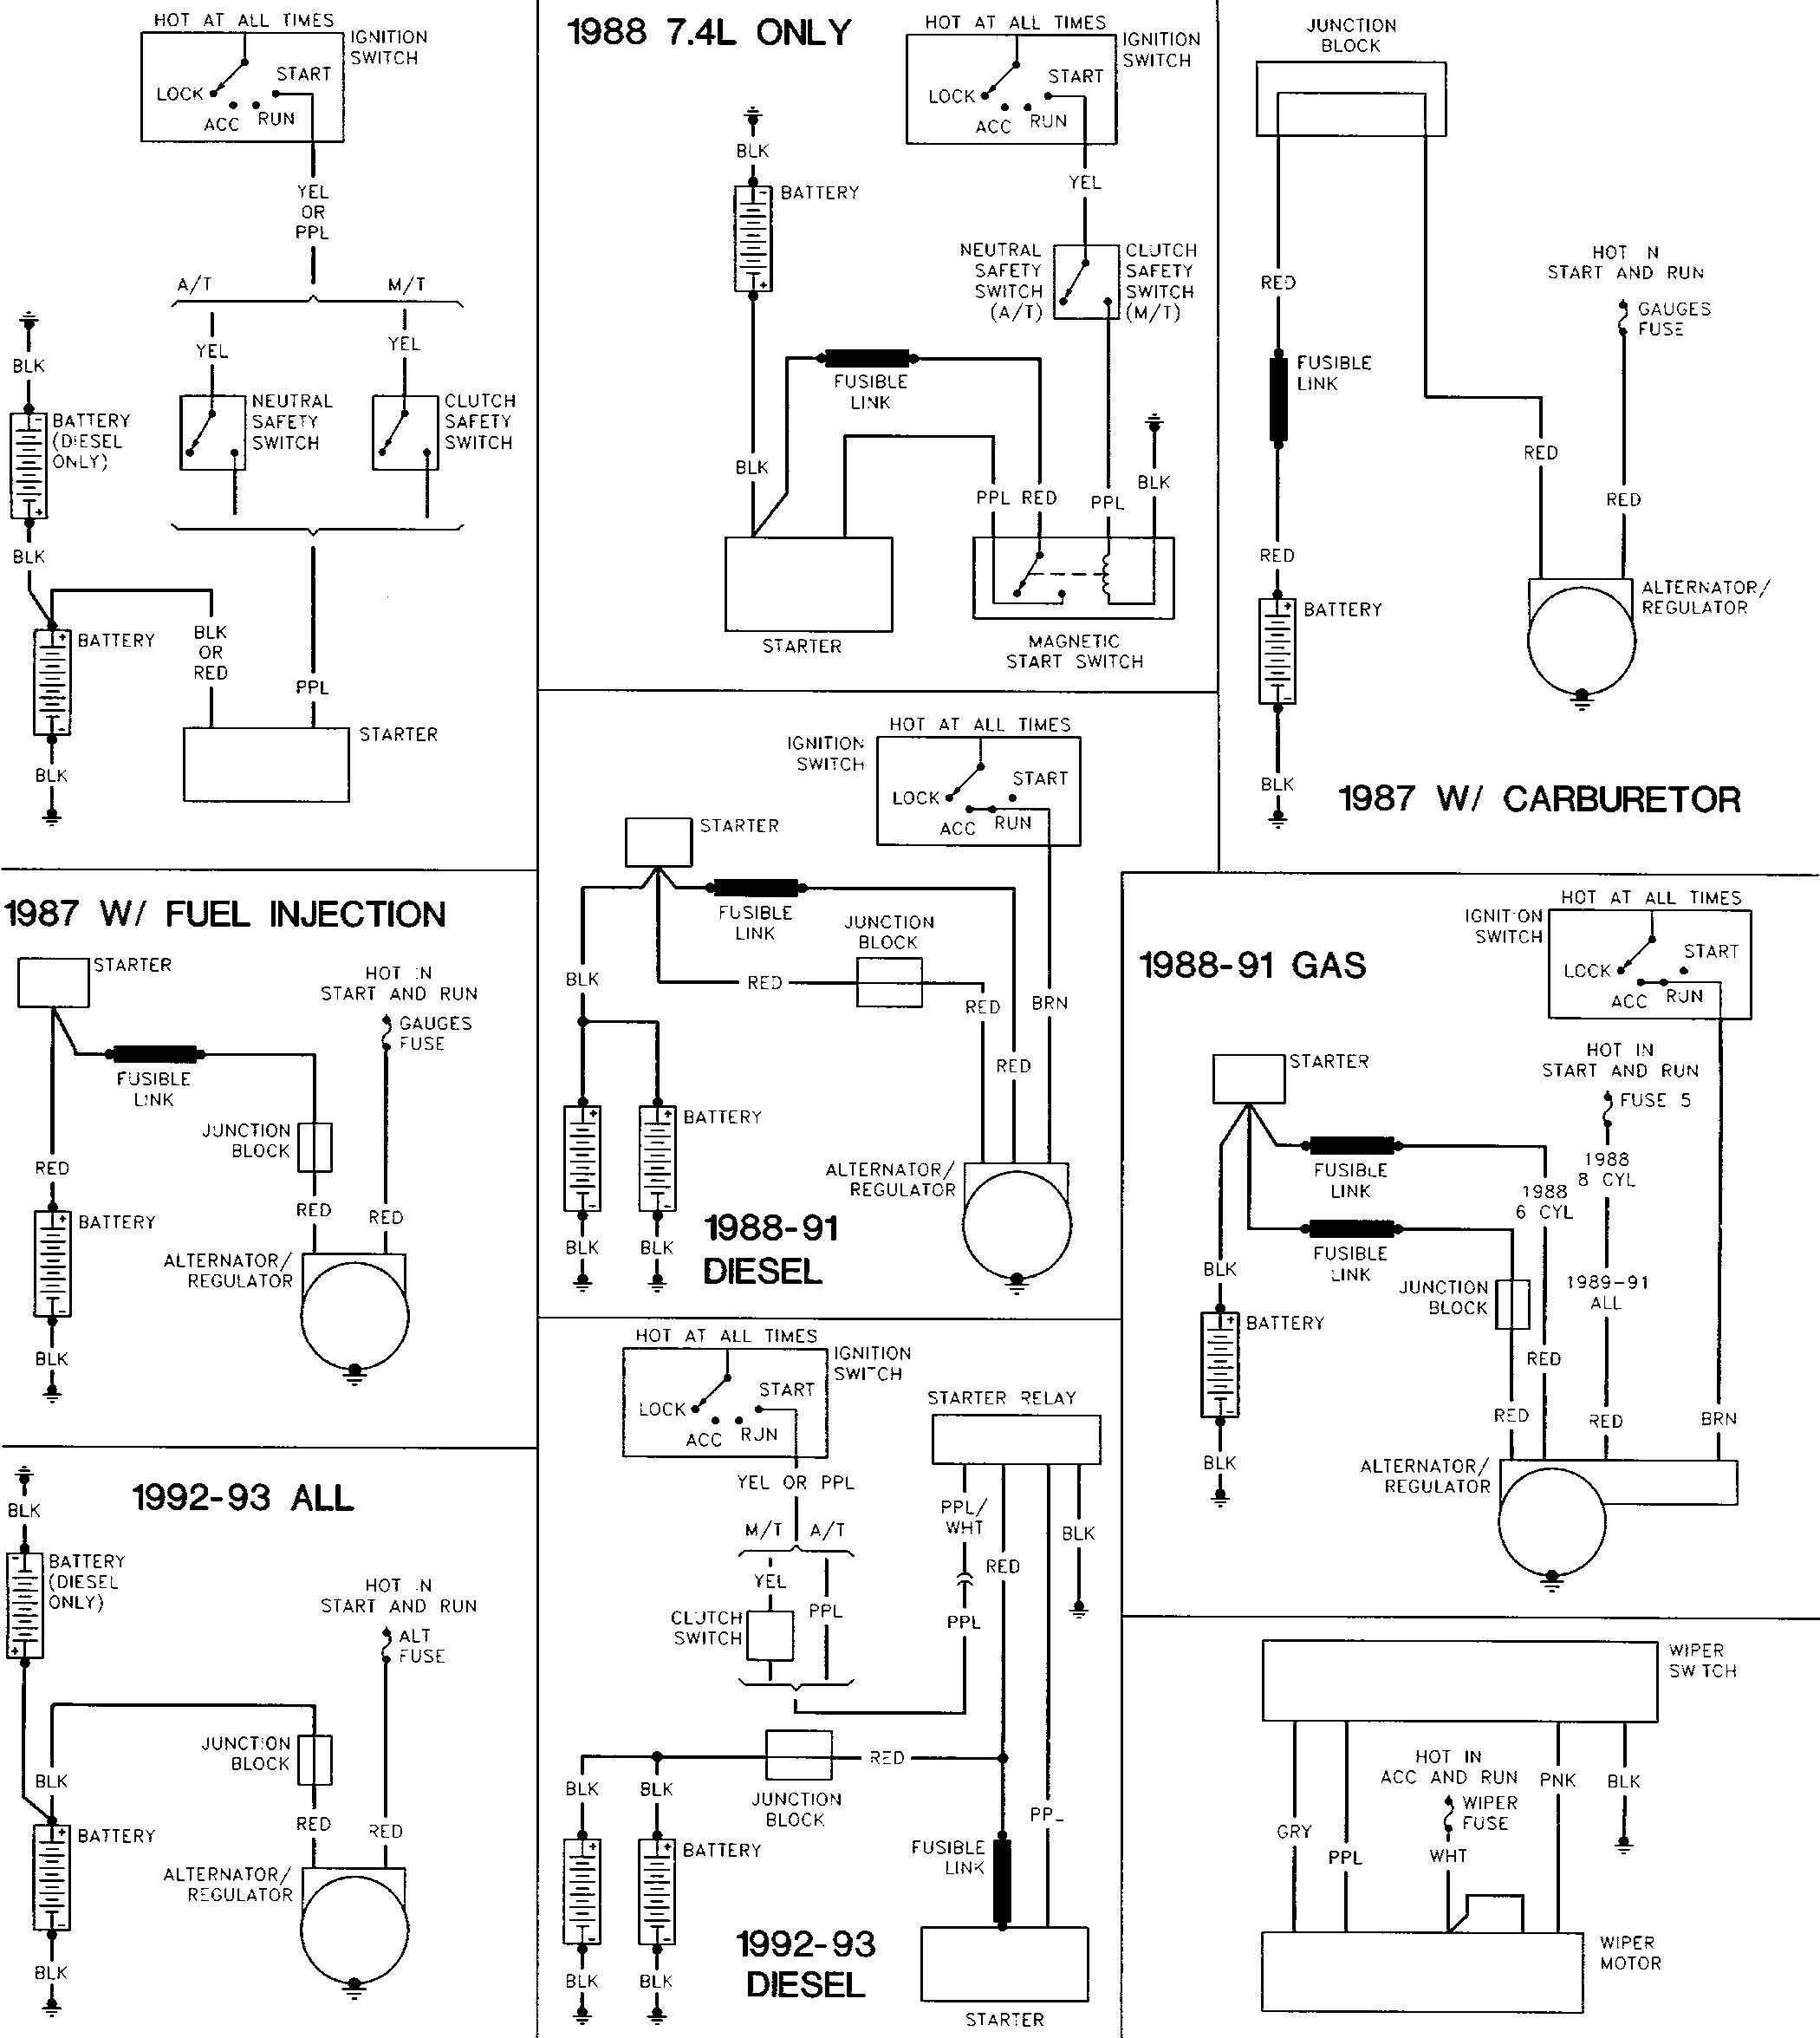 110v Wiring Diagrams 1991 Gulfstream Chevy 350 Distributor Wiring For Wiring Diagram Schematics